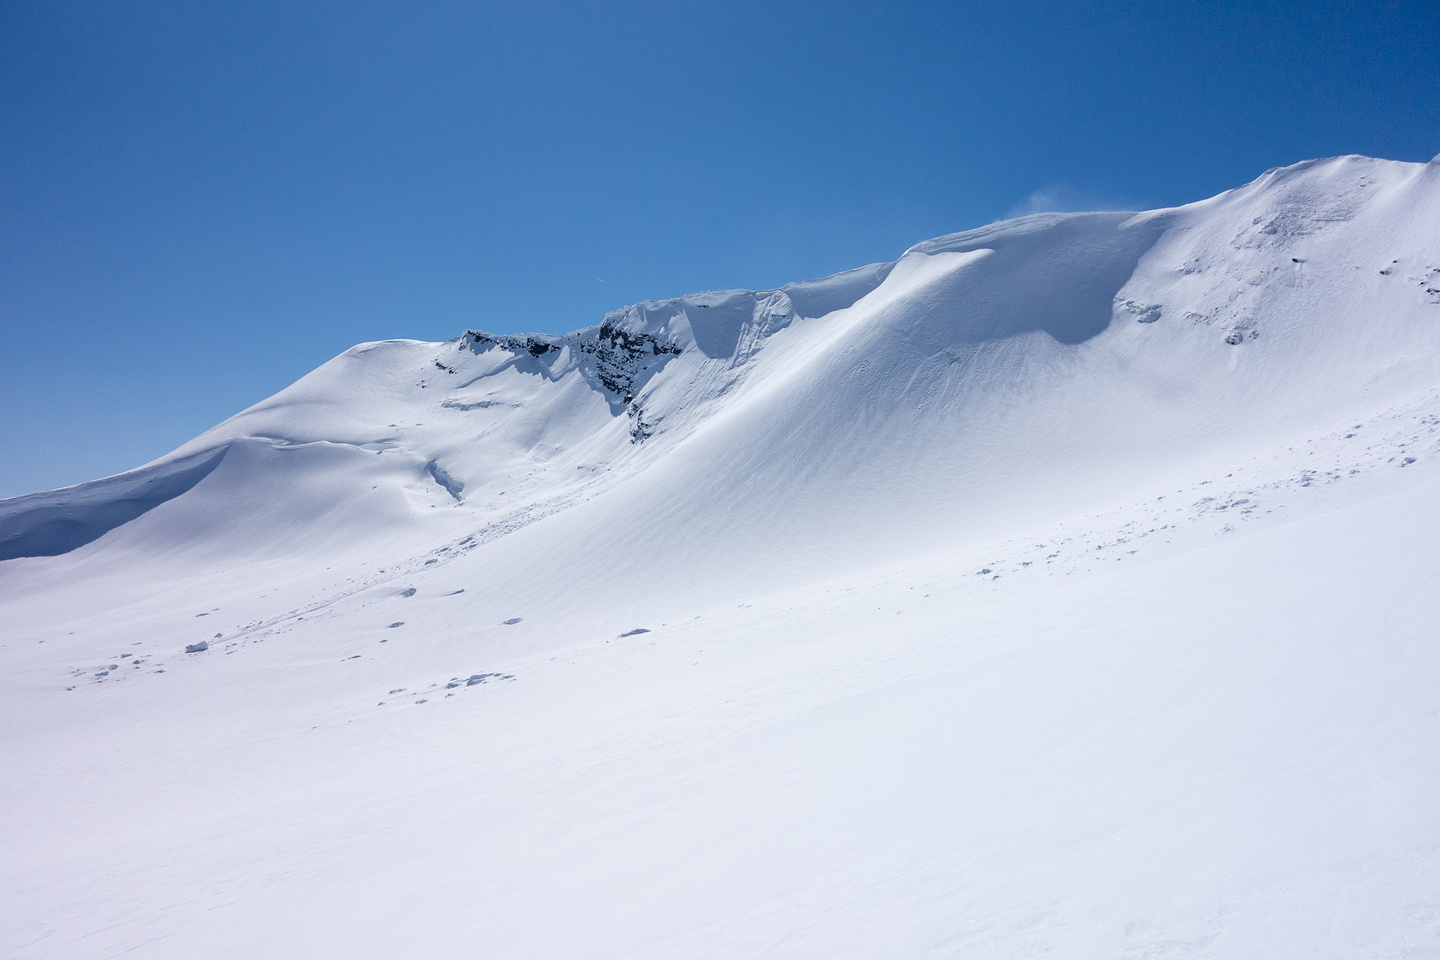 Note the cornice failure that we triggered en route from the summit above.